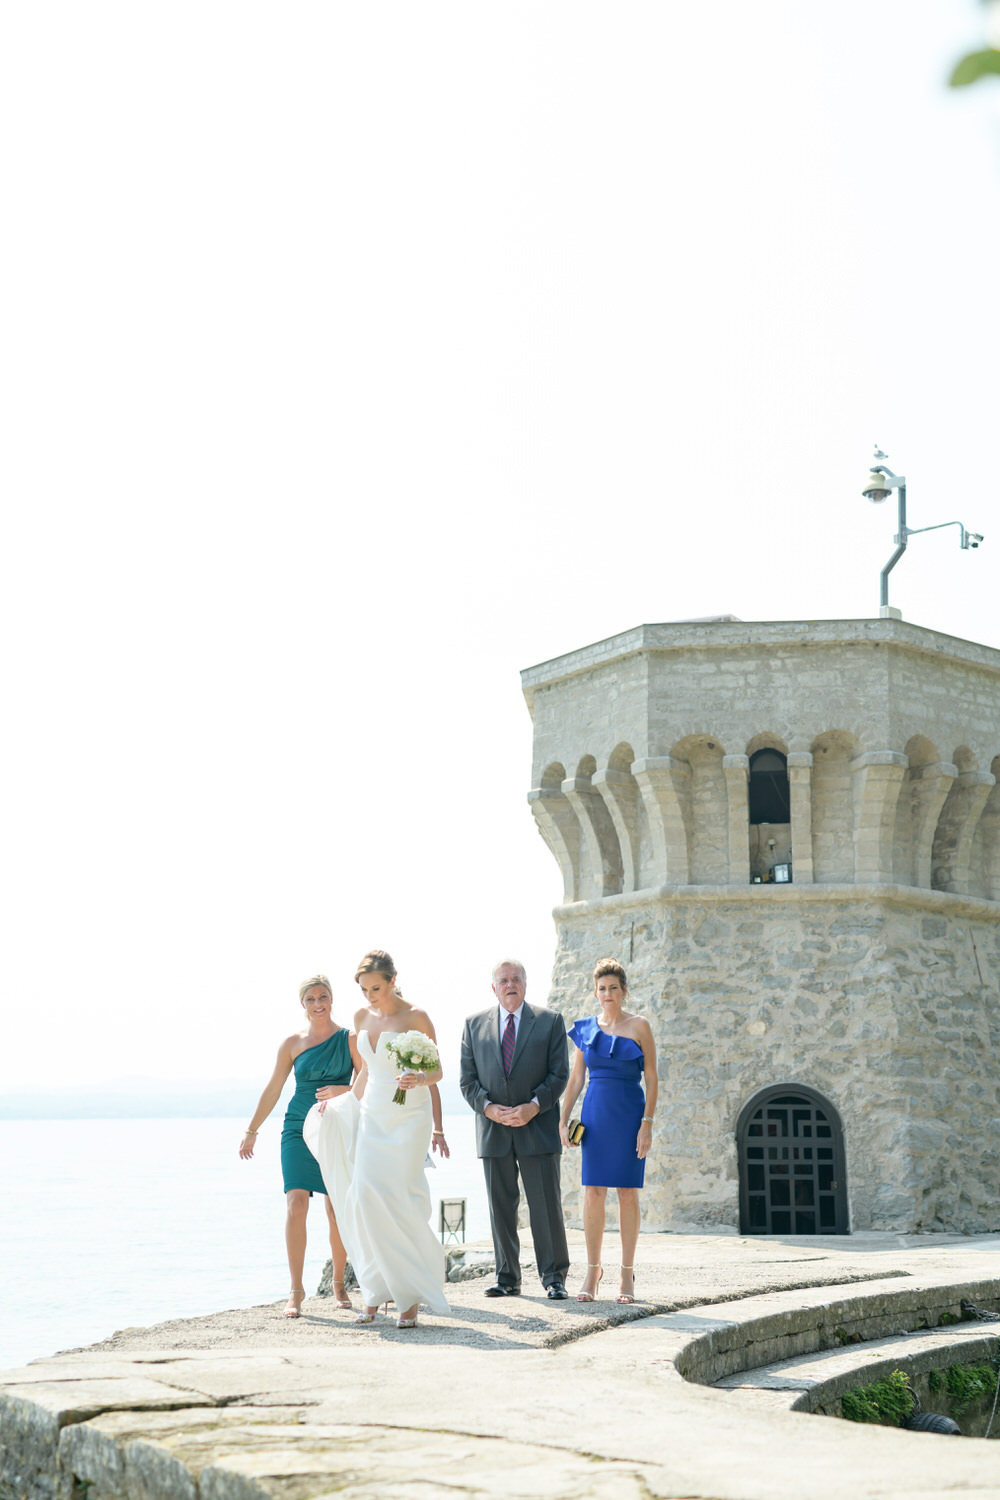 Garda Lake Wedding Photographer - S&B - ©bottega53-28.JPG